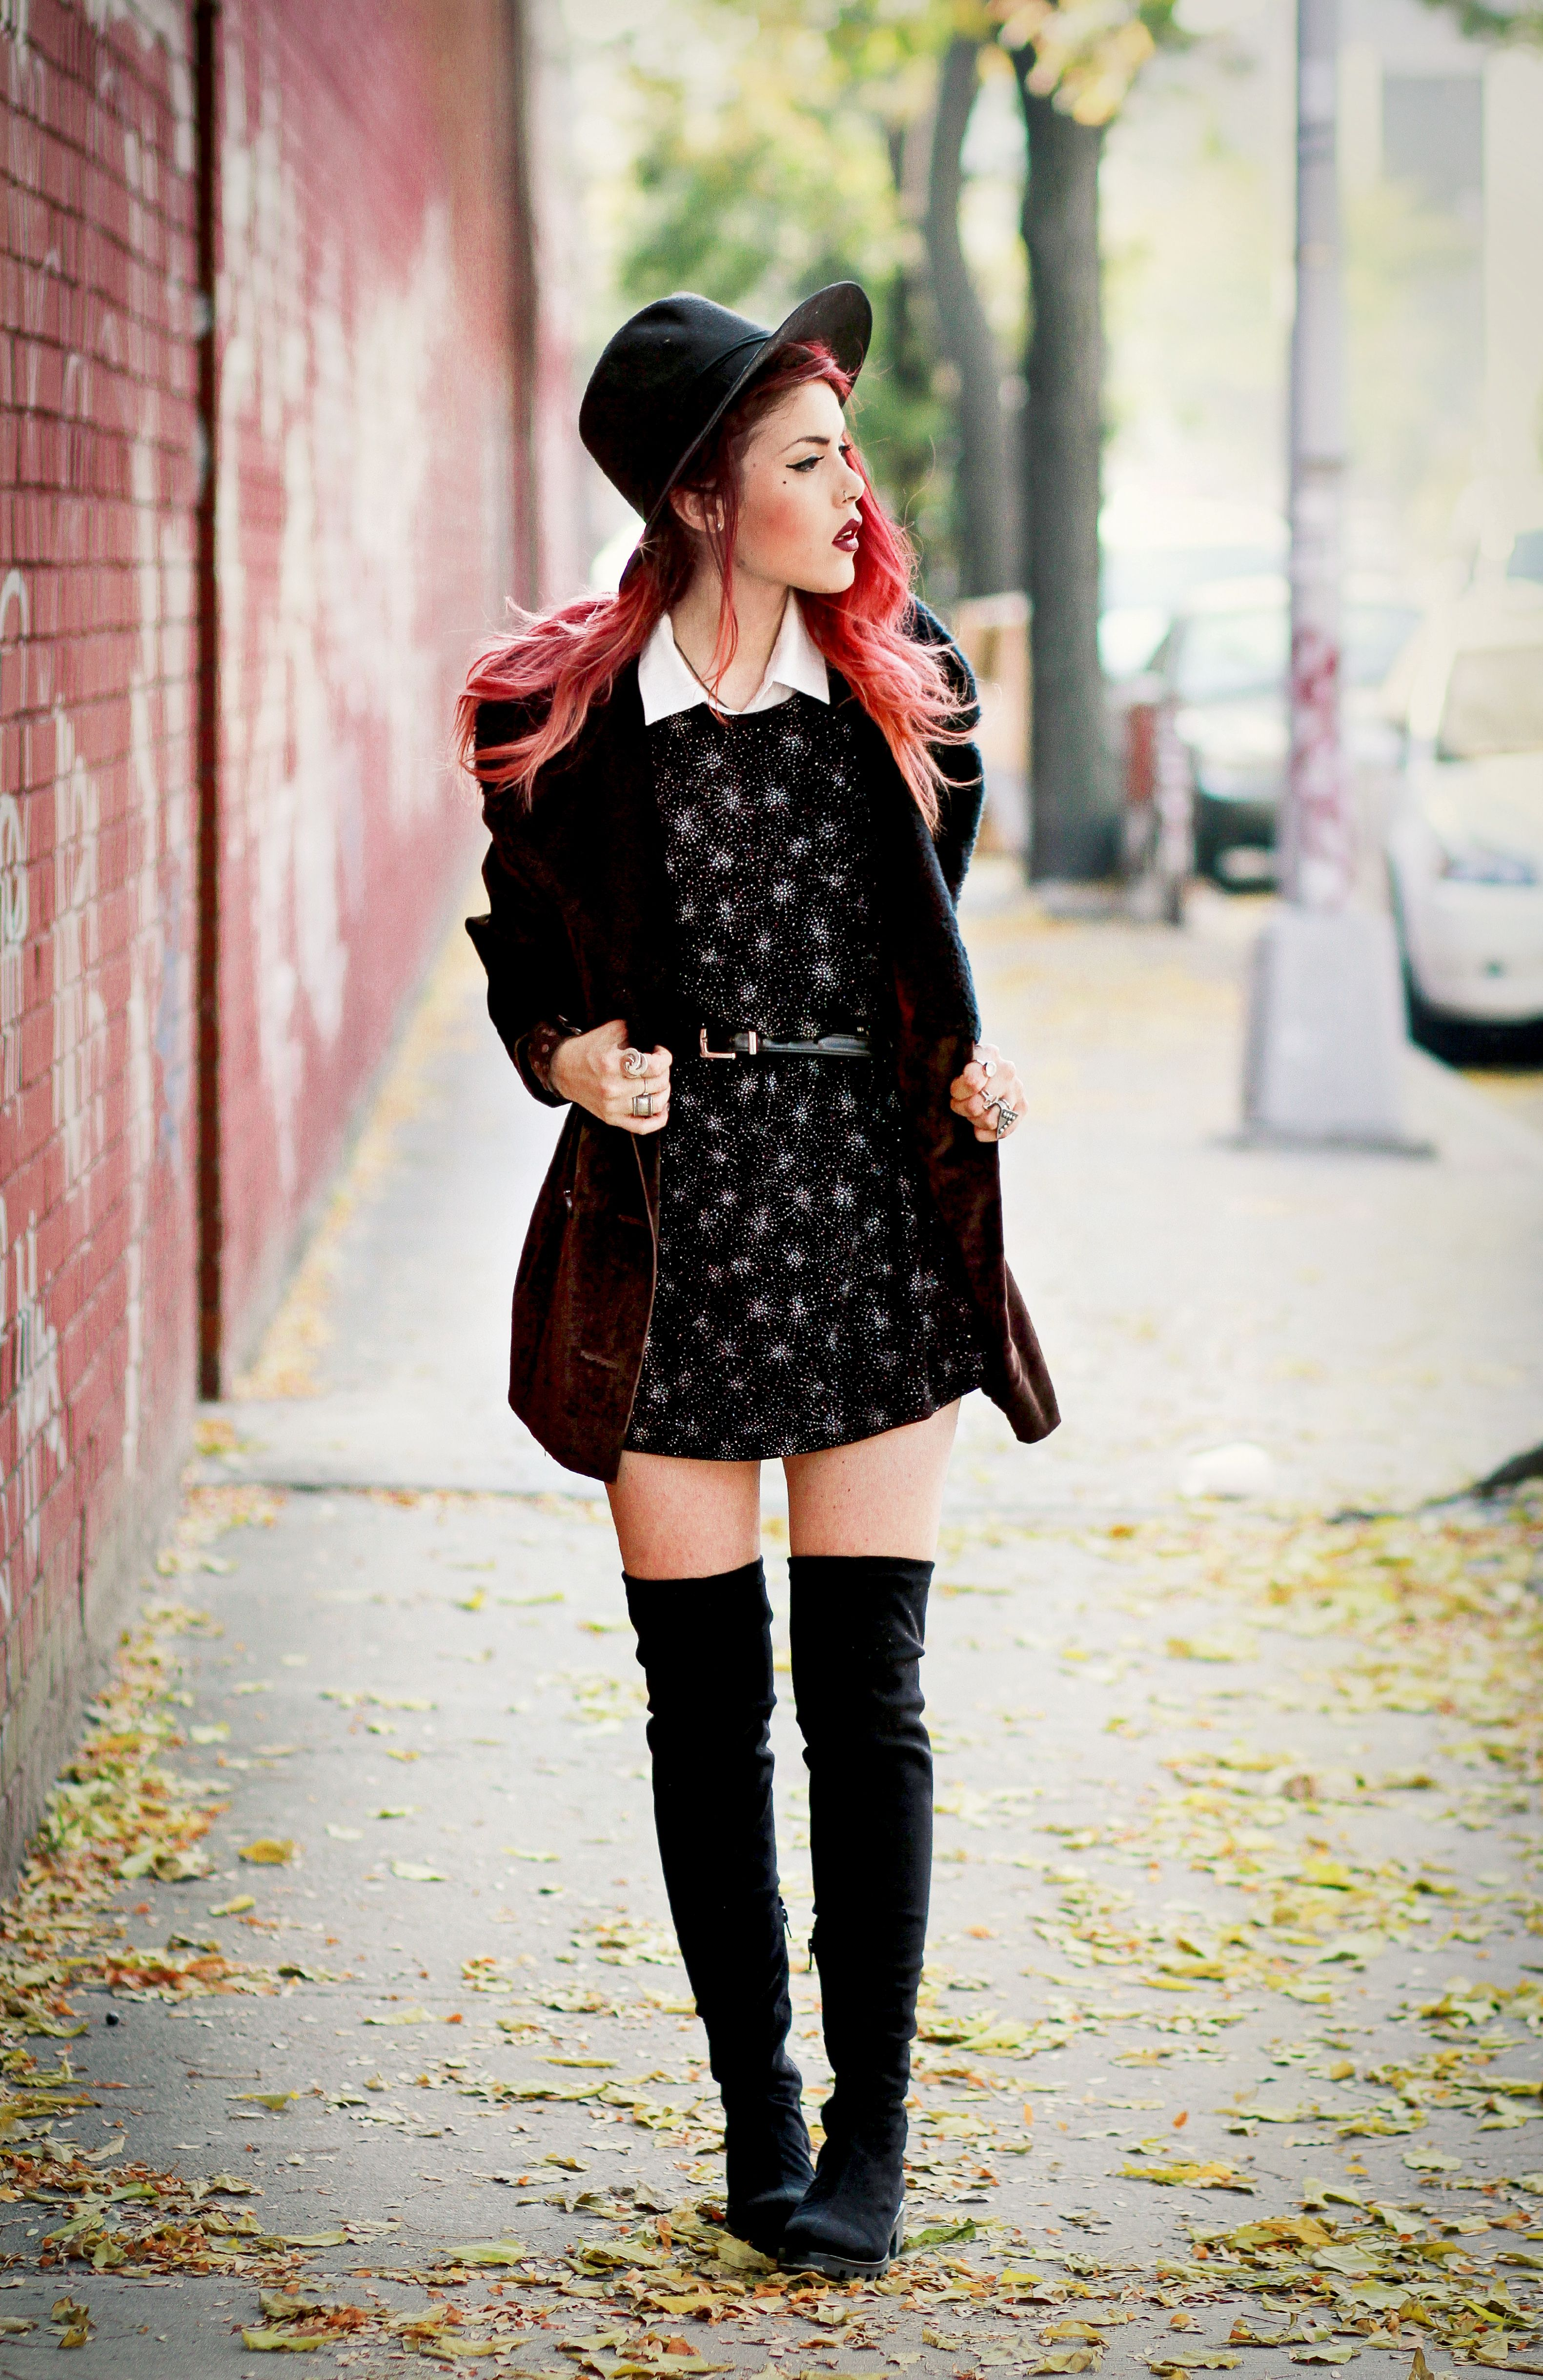 hipster tumblr clothes - Google Search | clothing | Pinterest | Le ...